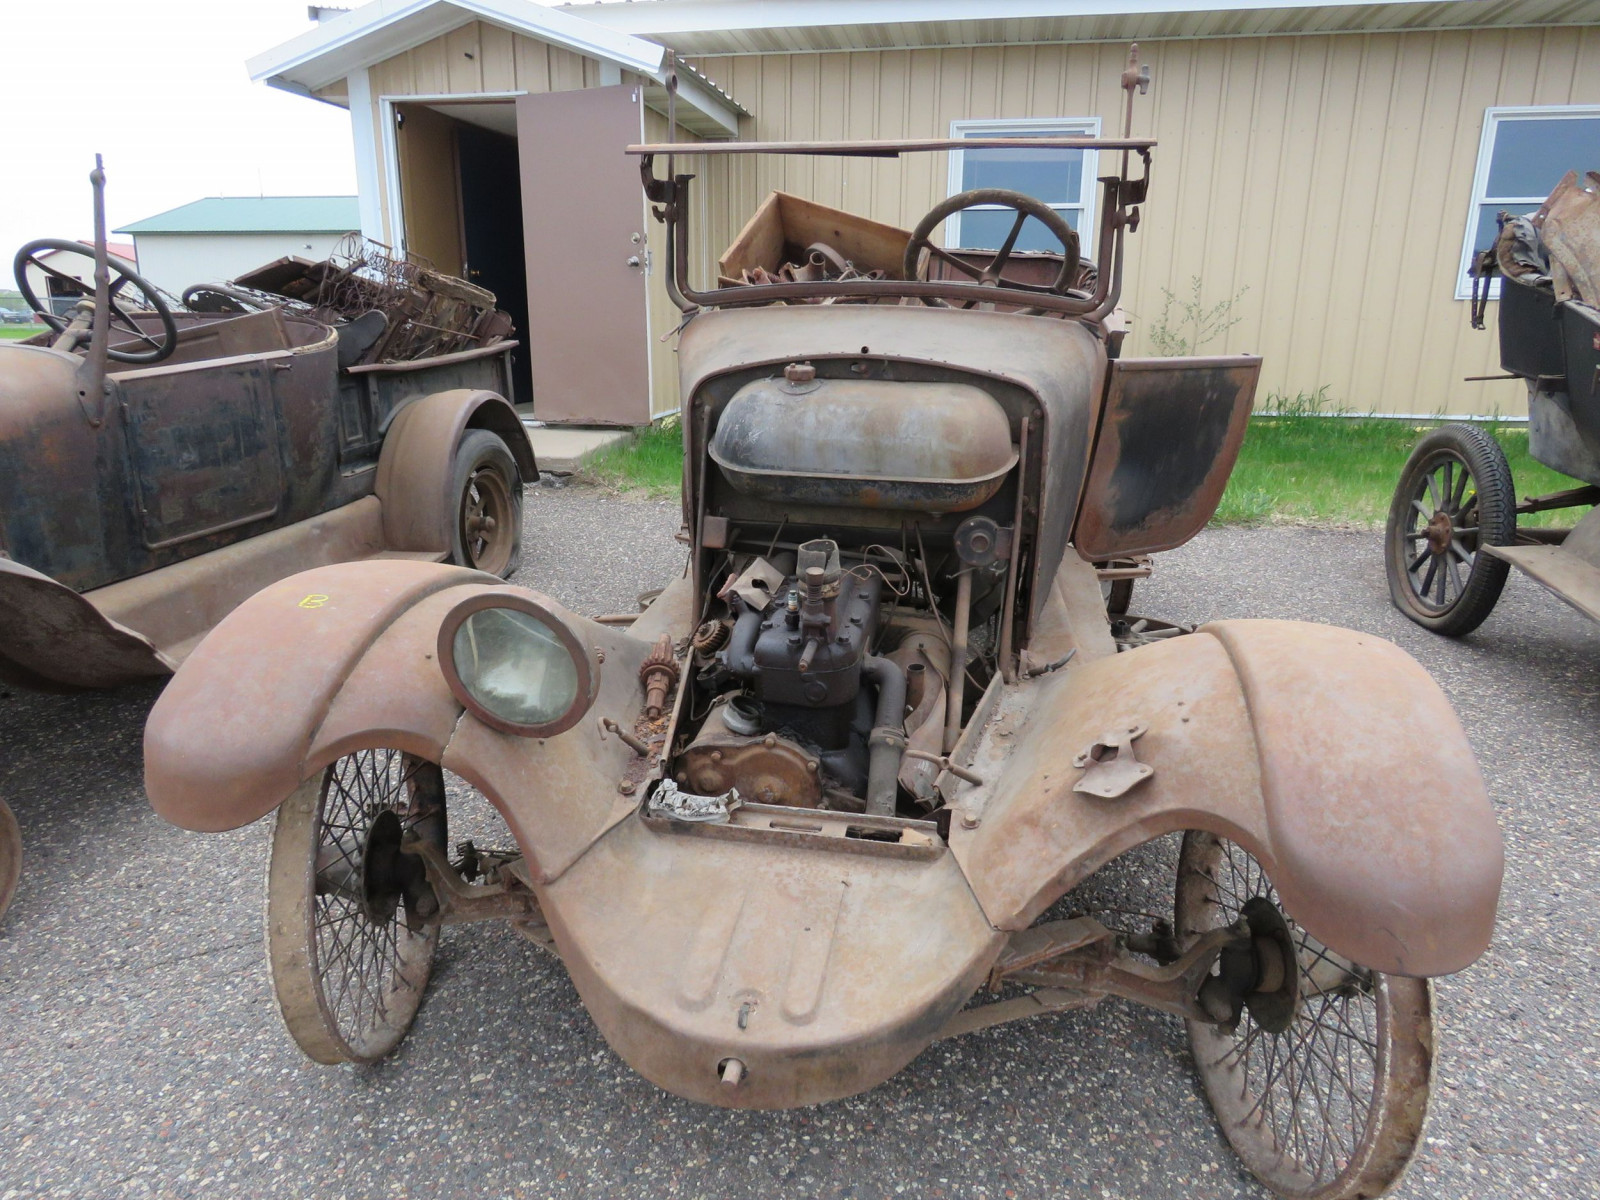 1925 Overland Touring Car for Project or Parts - Image 2